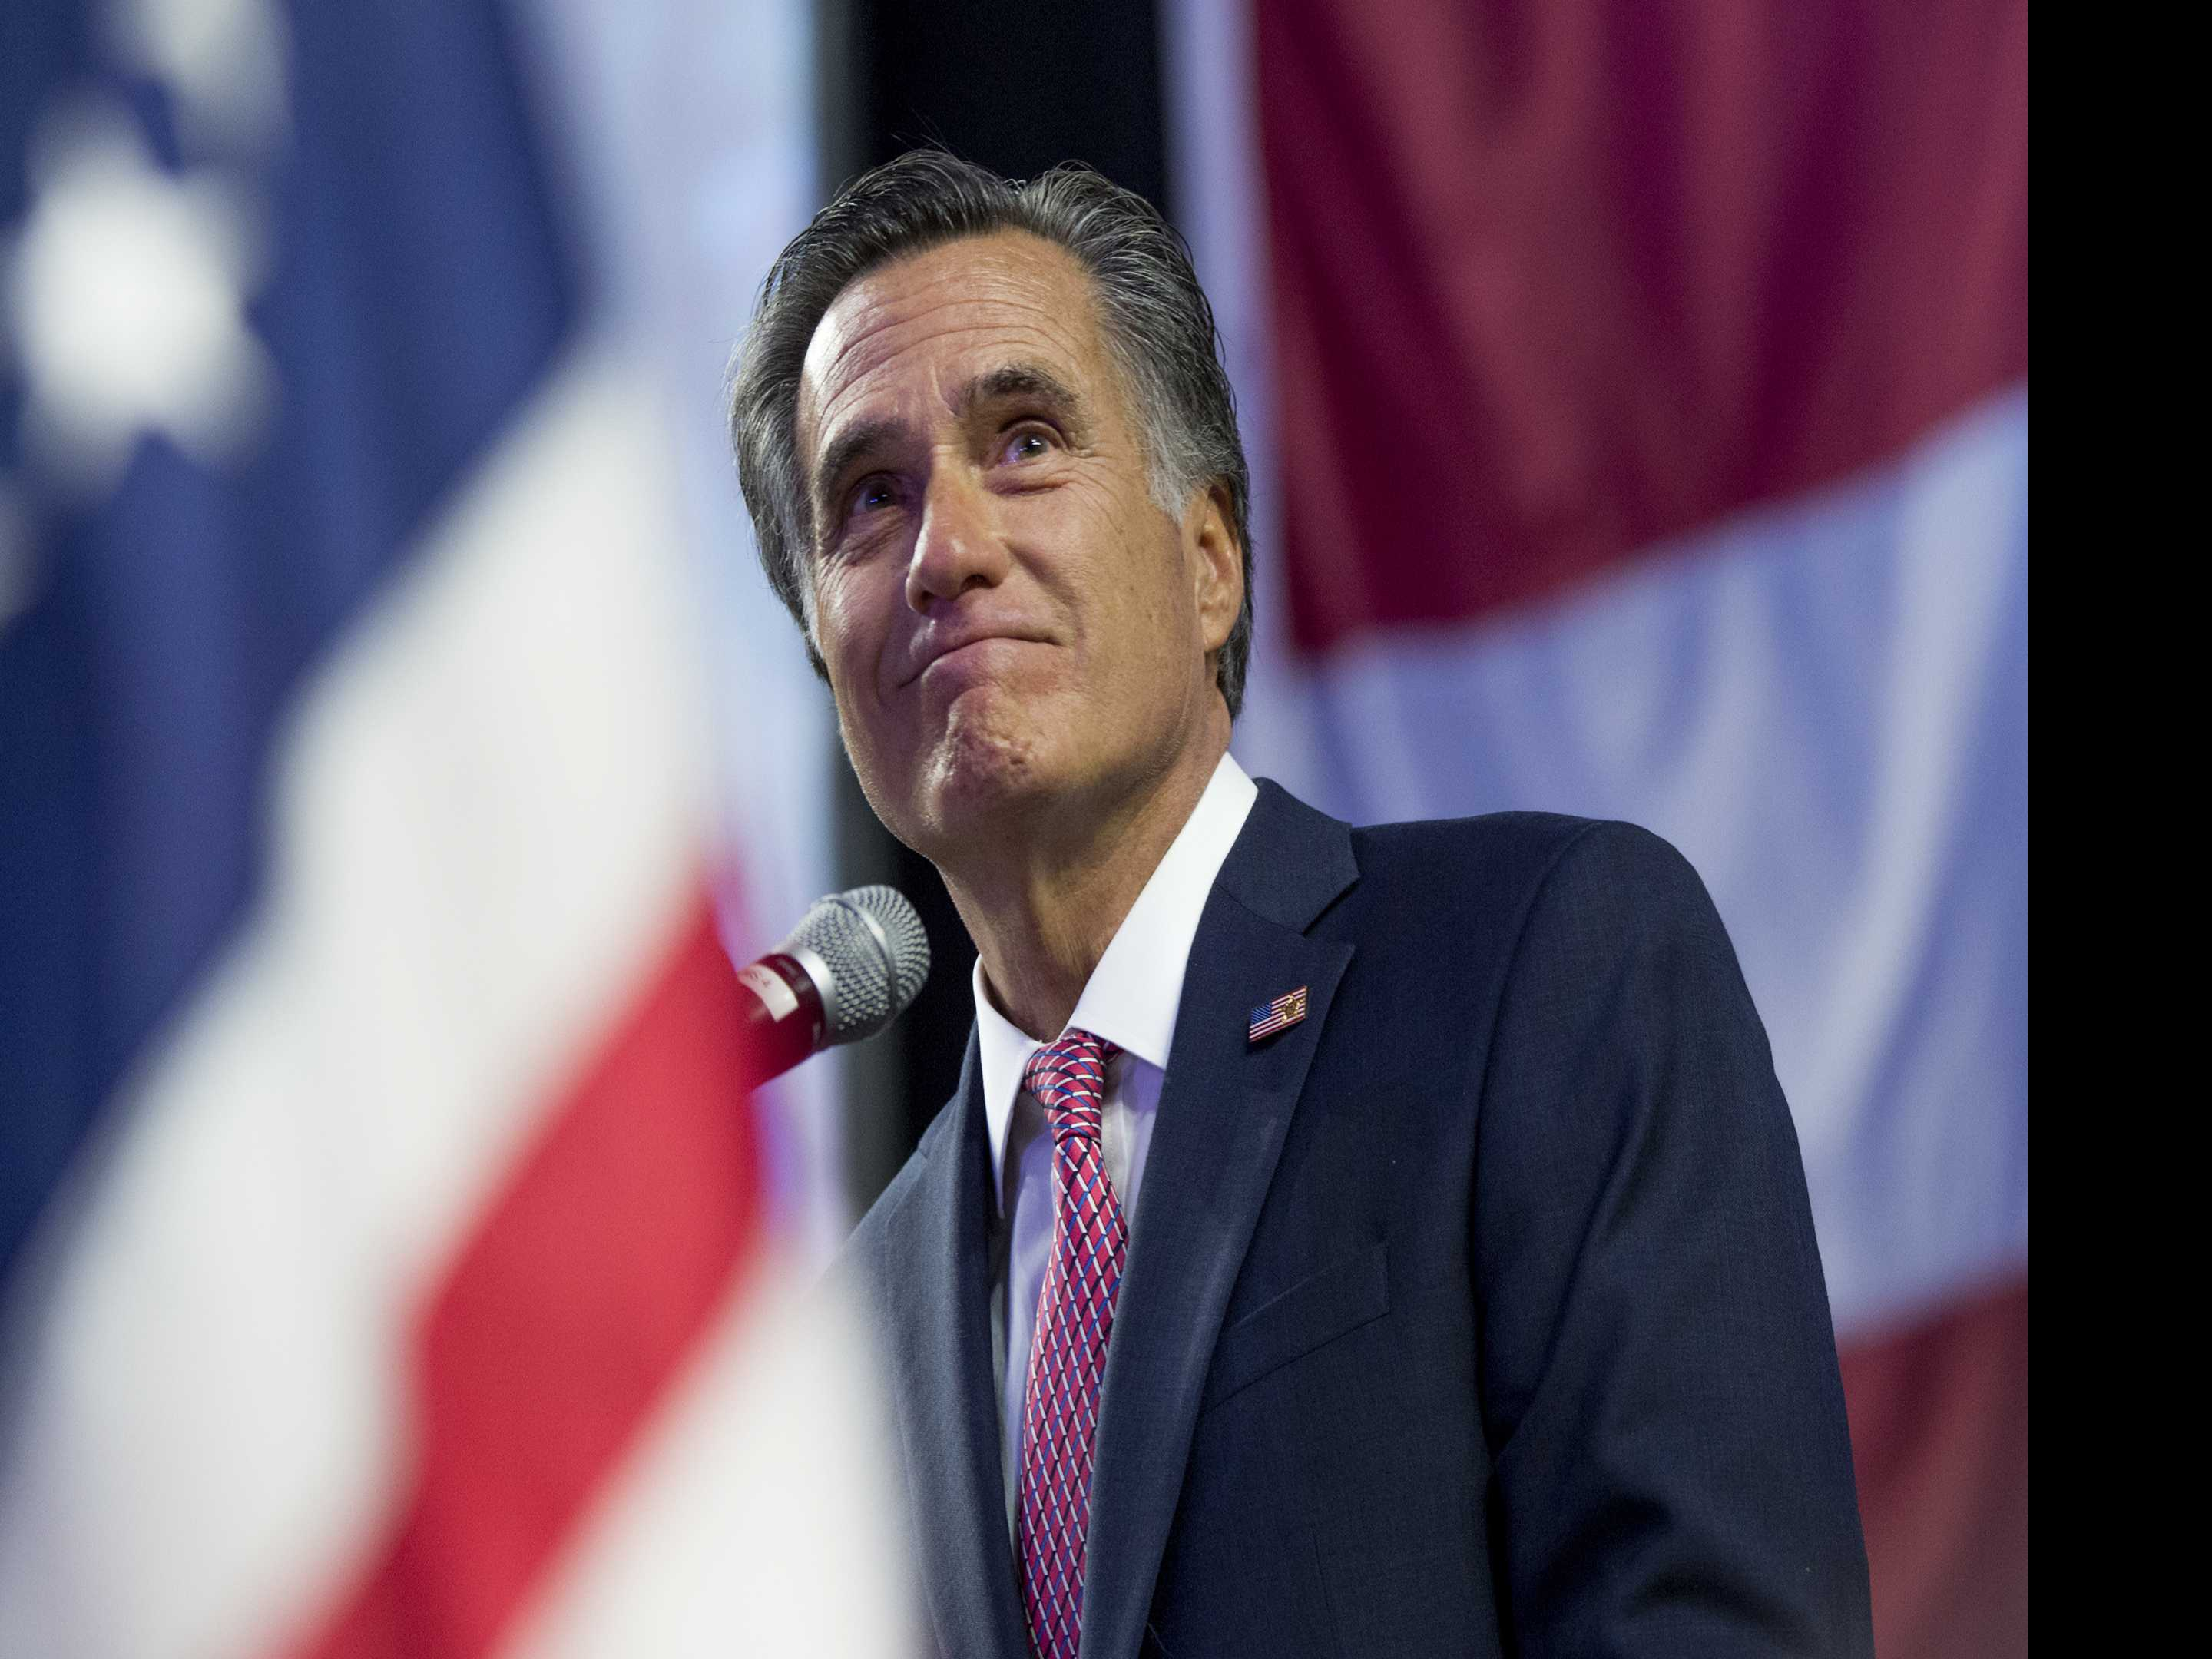 AP FACT CHECK: Romney Didn't Illegally Gather Voter Info